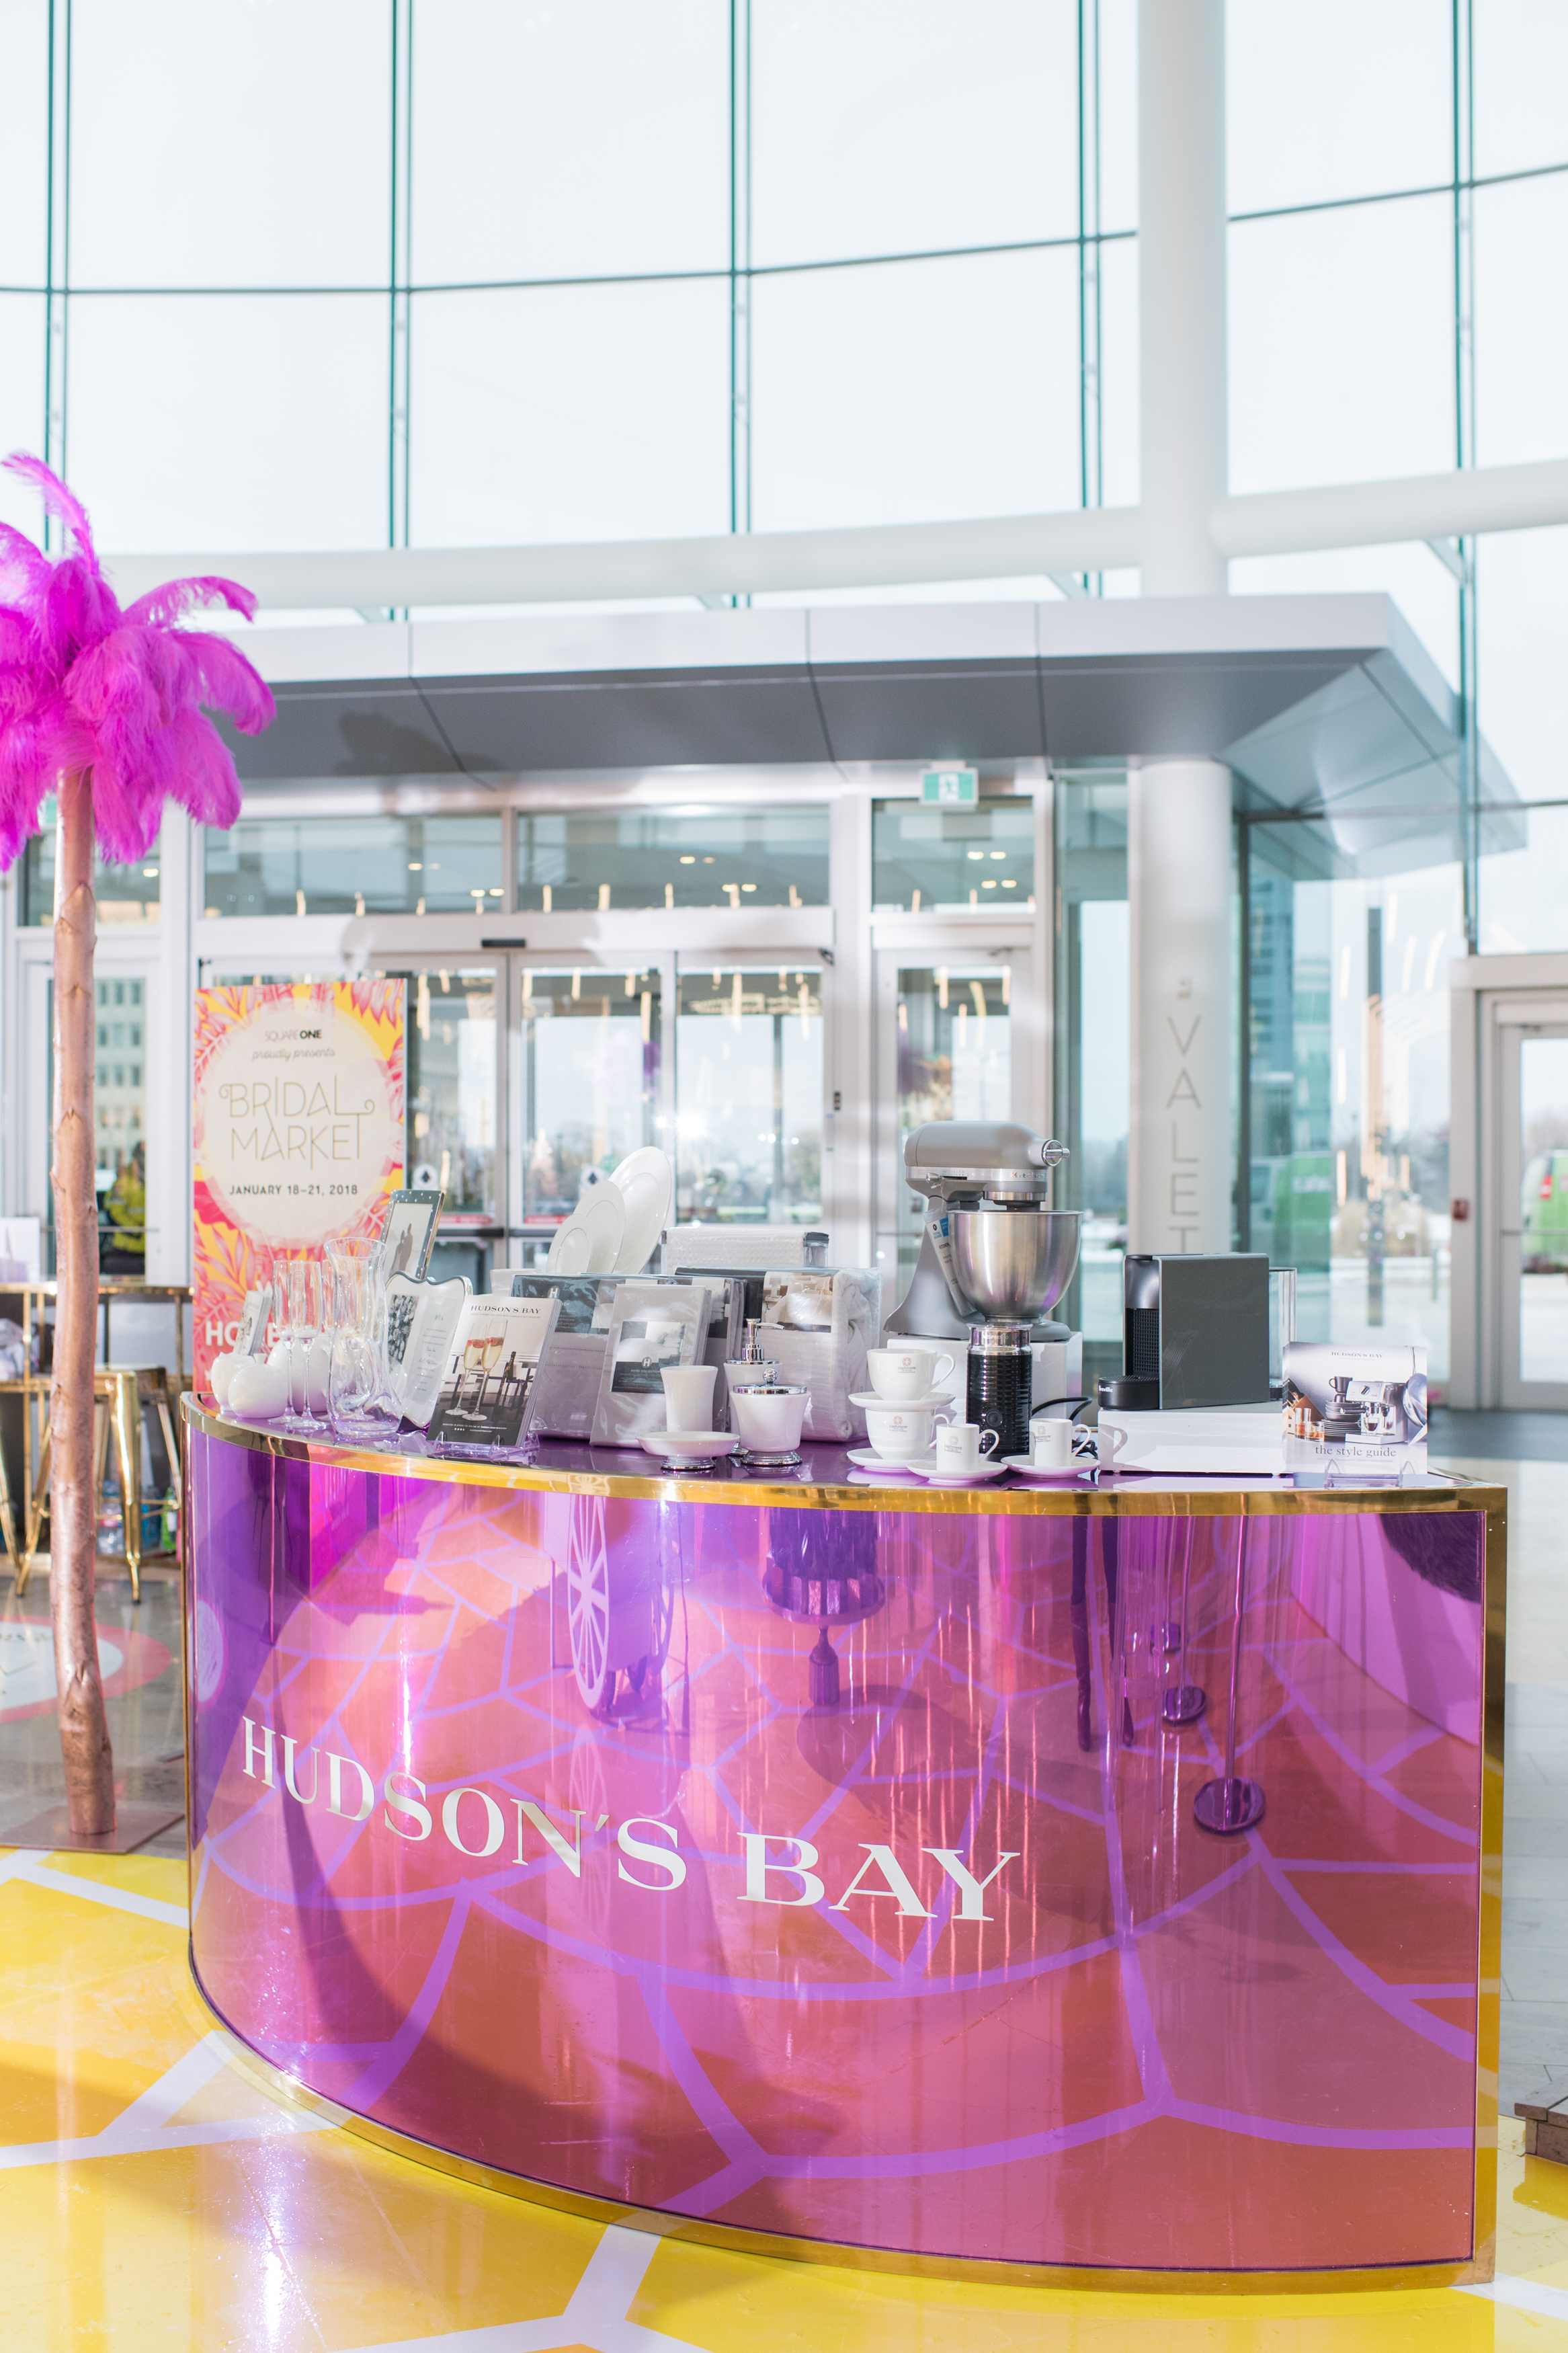 August In Bloom - Hudson's Bay set up - #SQ1Bridal (Square One Shopping Centre)